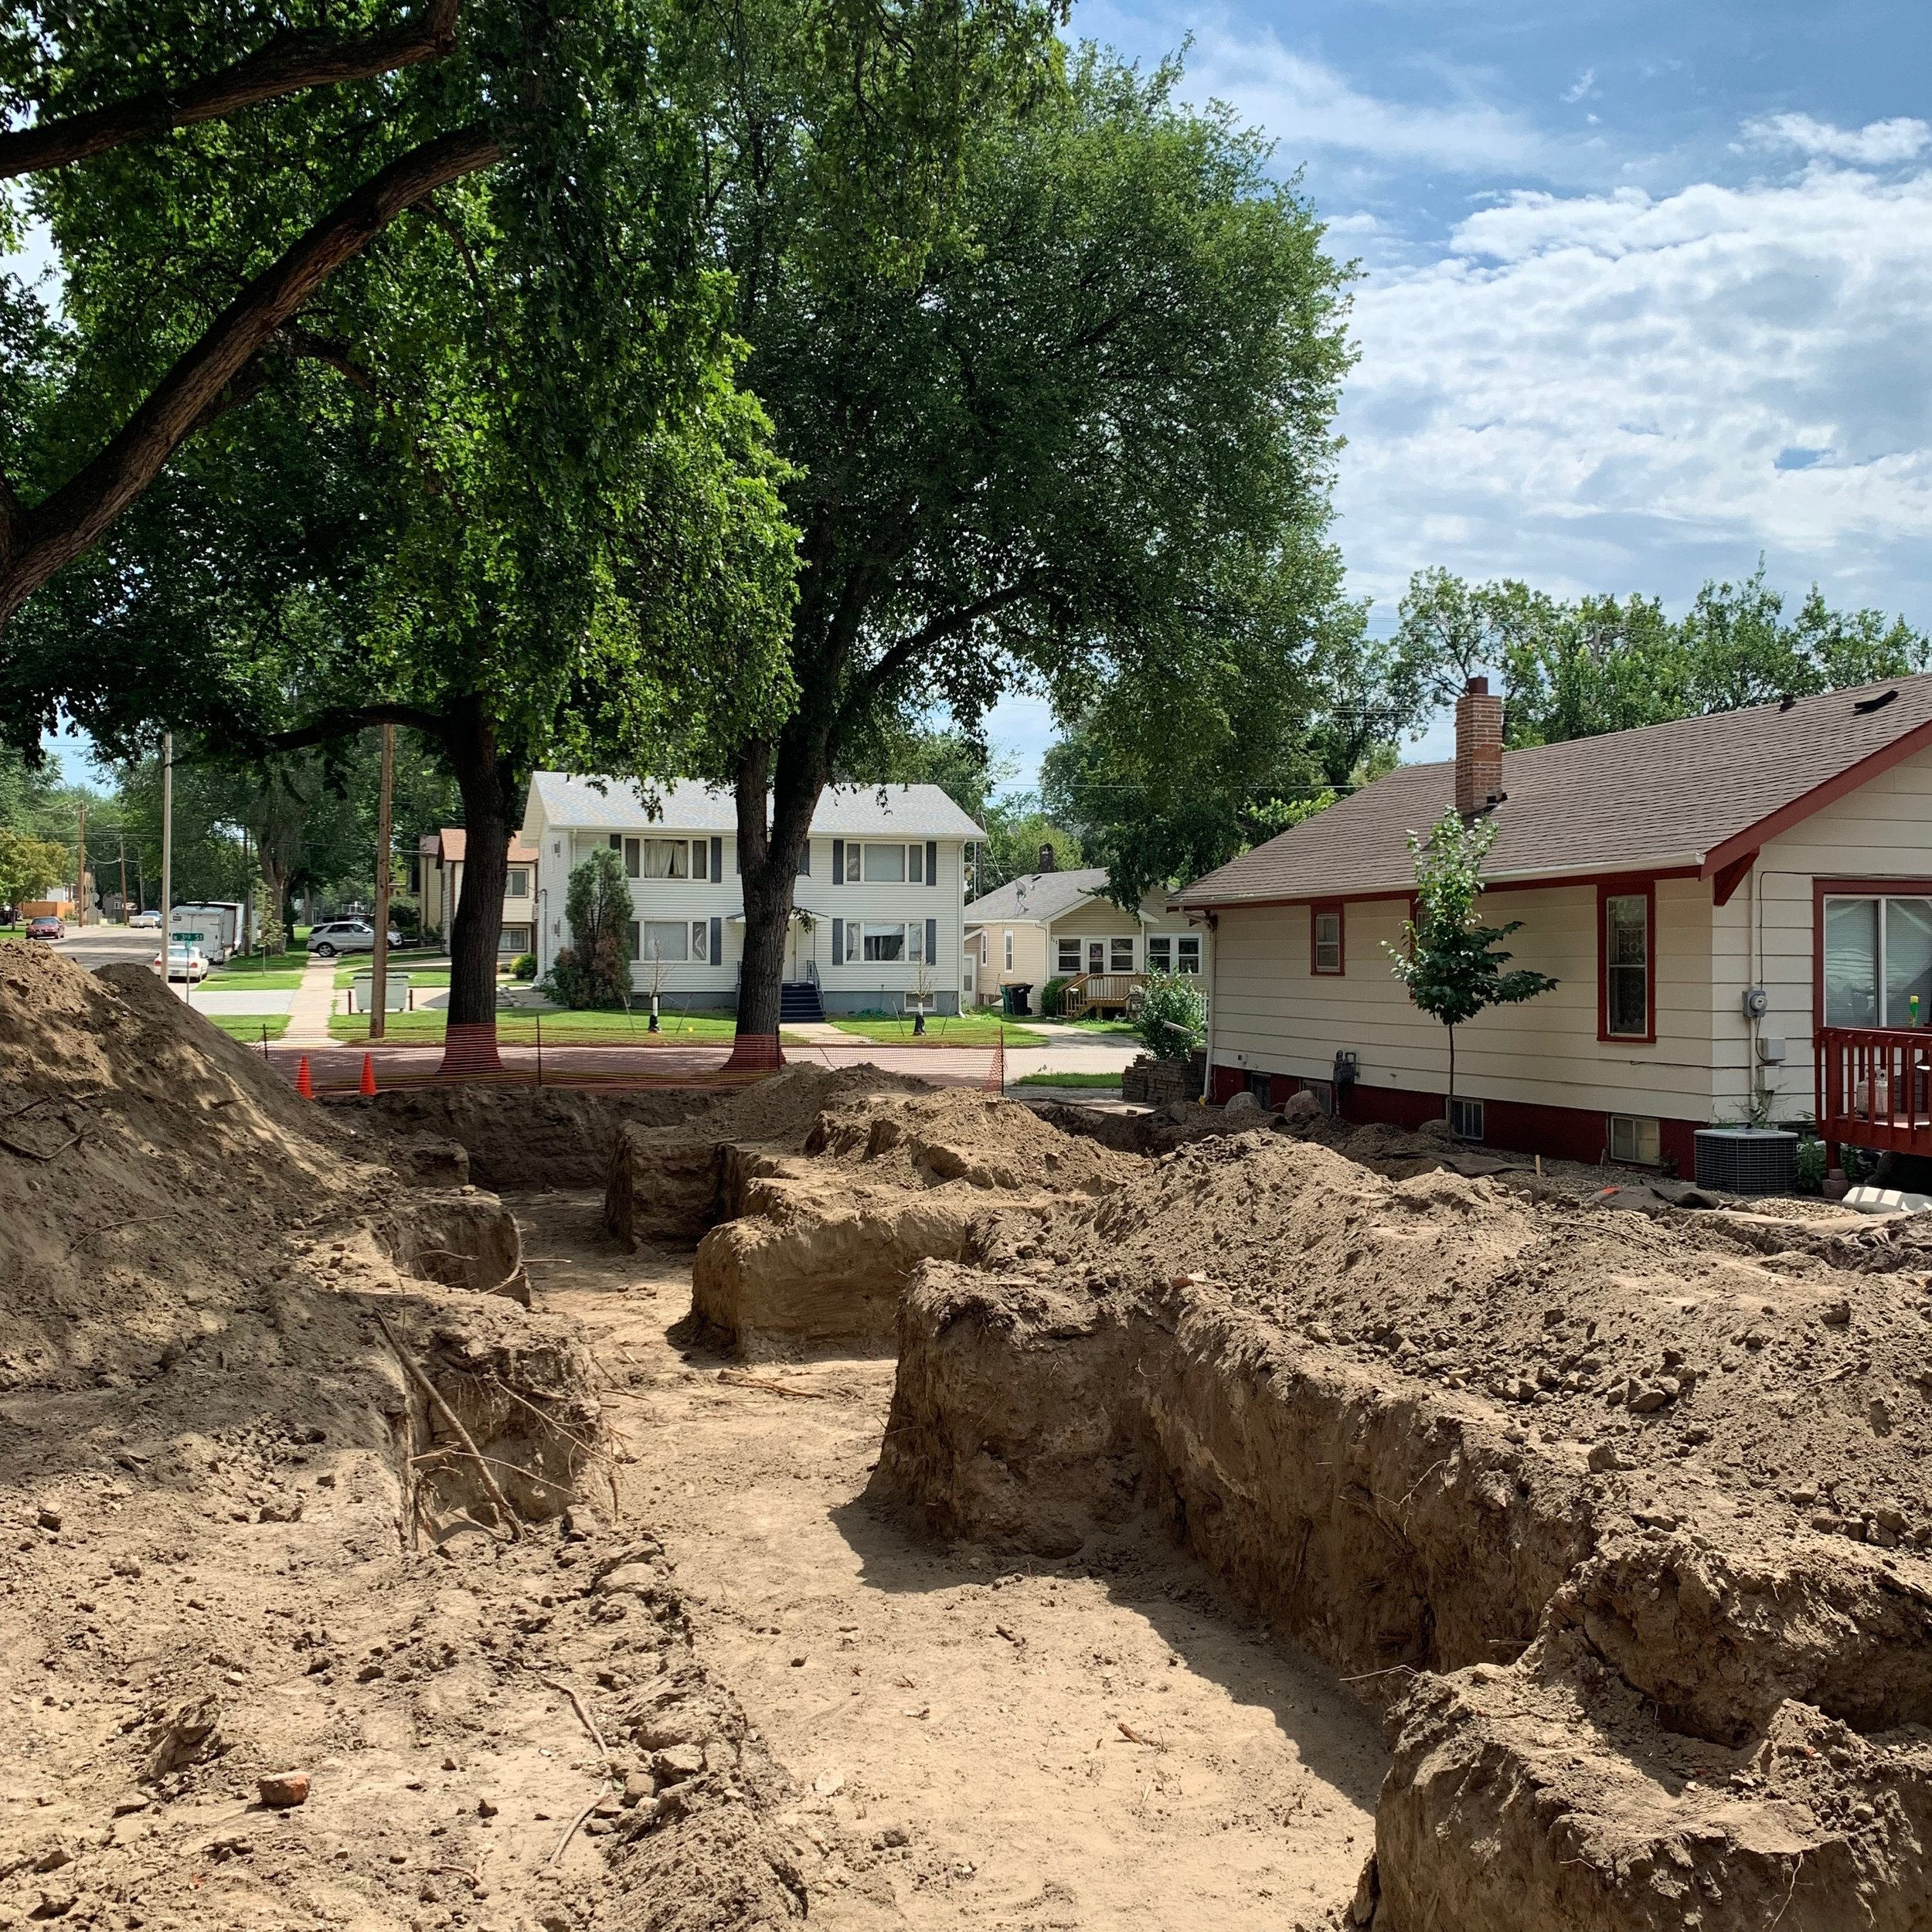 Establishing the proper elevation for the main floor was very important to us to ensure a comfortable main floor living space while still engaging the sidewalk. The site has some slope so we ended up stepping the units in the middle.